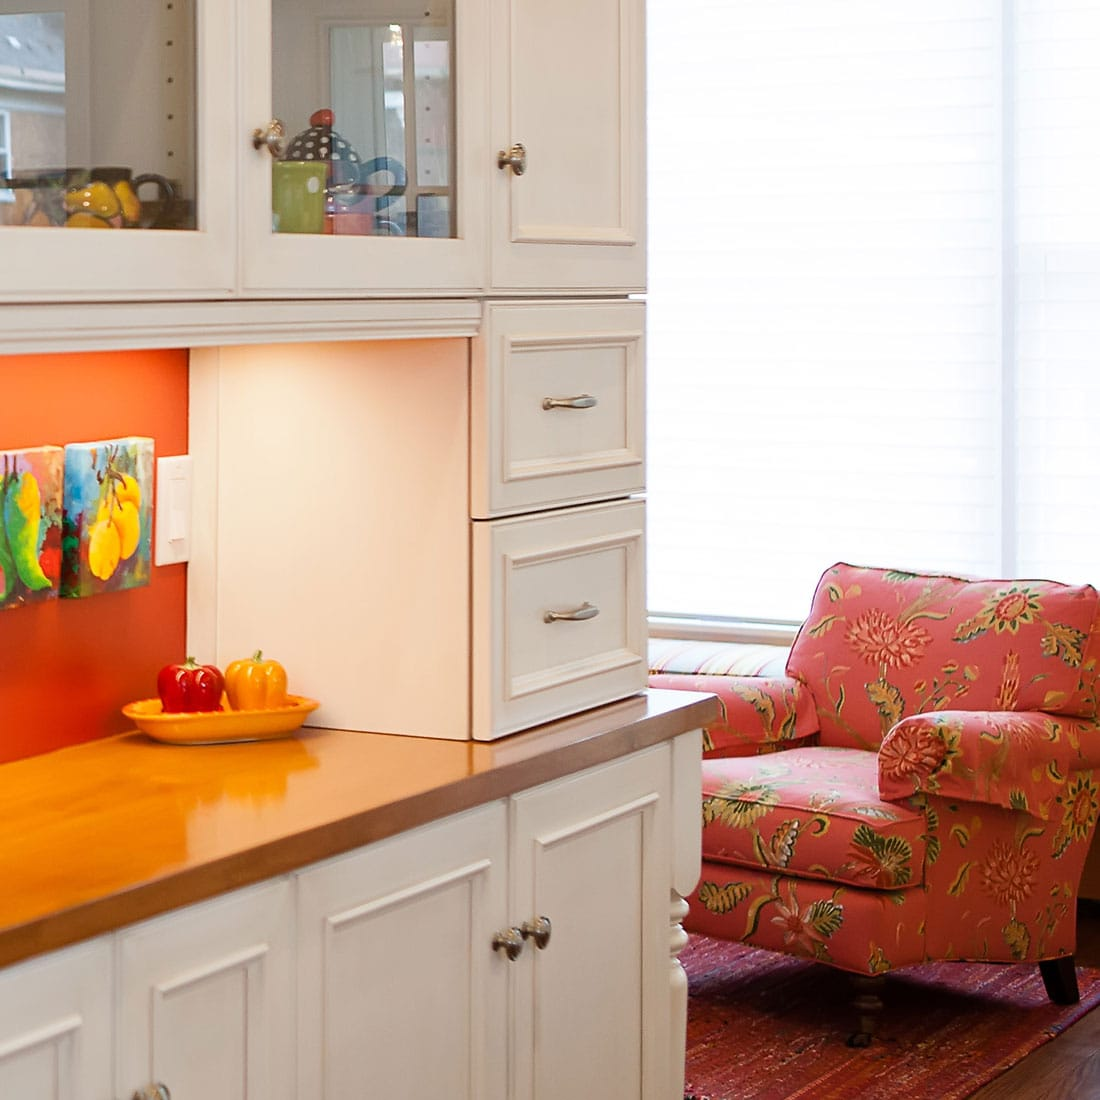 Bright color accents in white kitchen with bright lounge chair